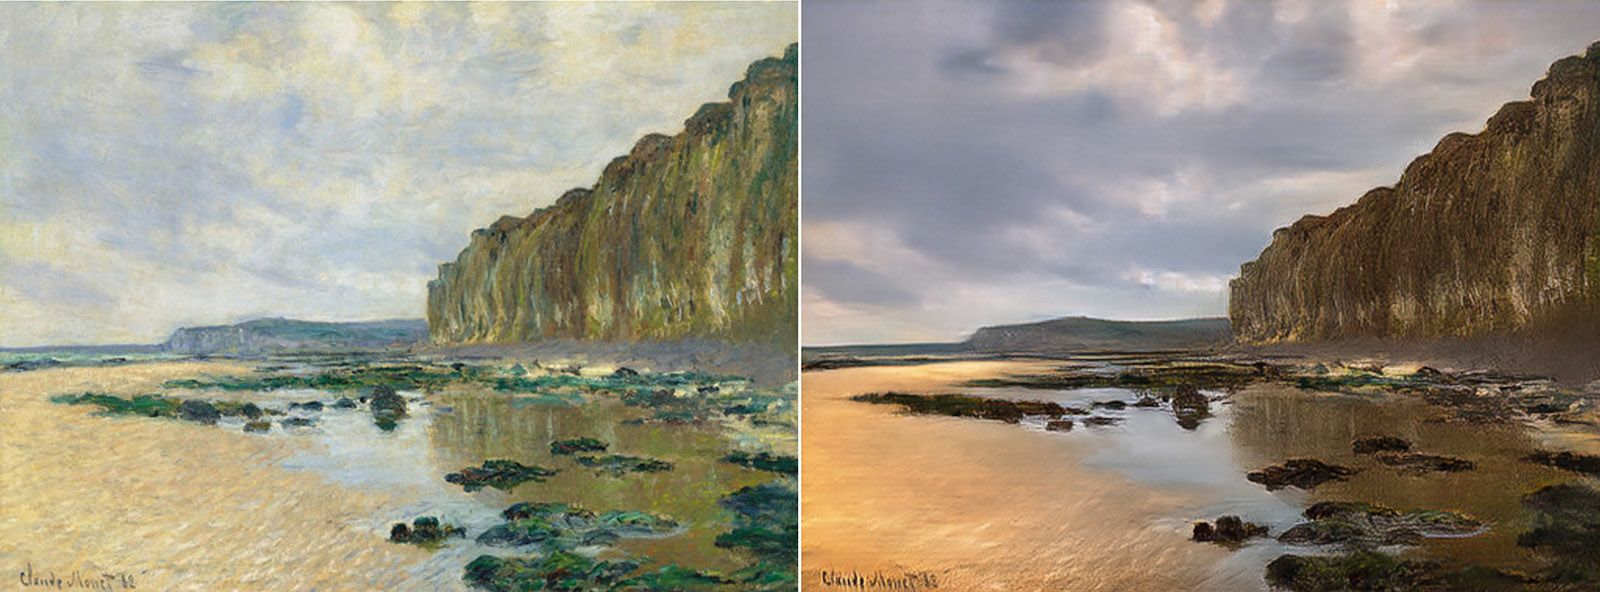 Reverse Prisma Ai Turns Monet Paintings Into Photos Monet Paintings # Muebles Fiesta Metronorte